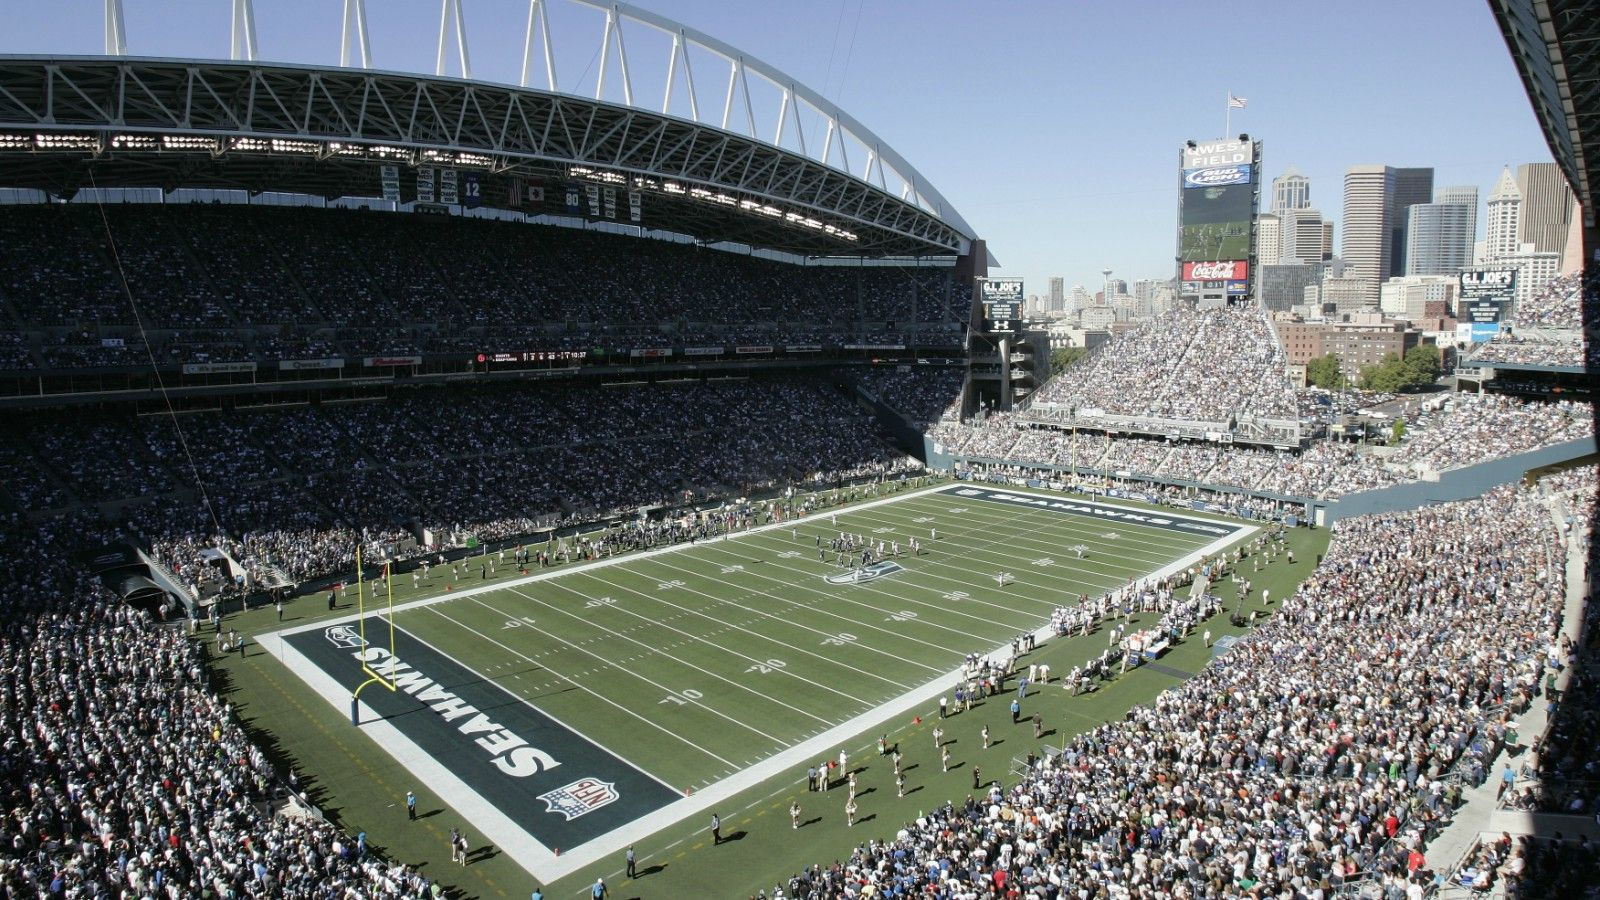 Things to Do in Seattle - Century Link Stadium